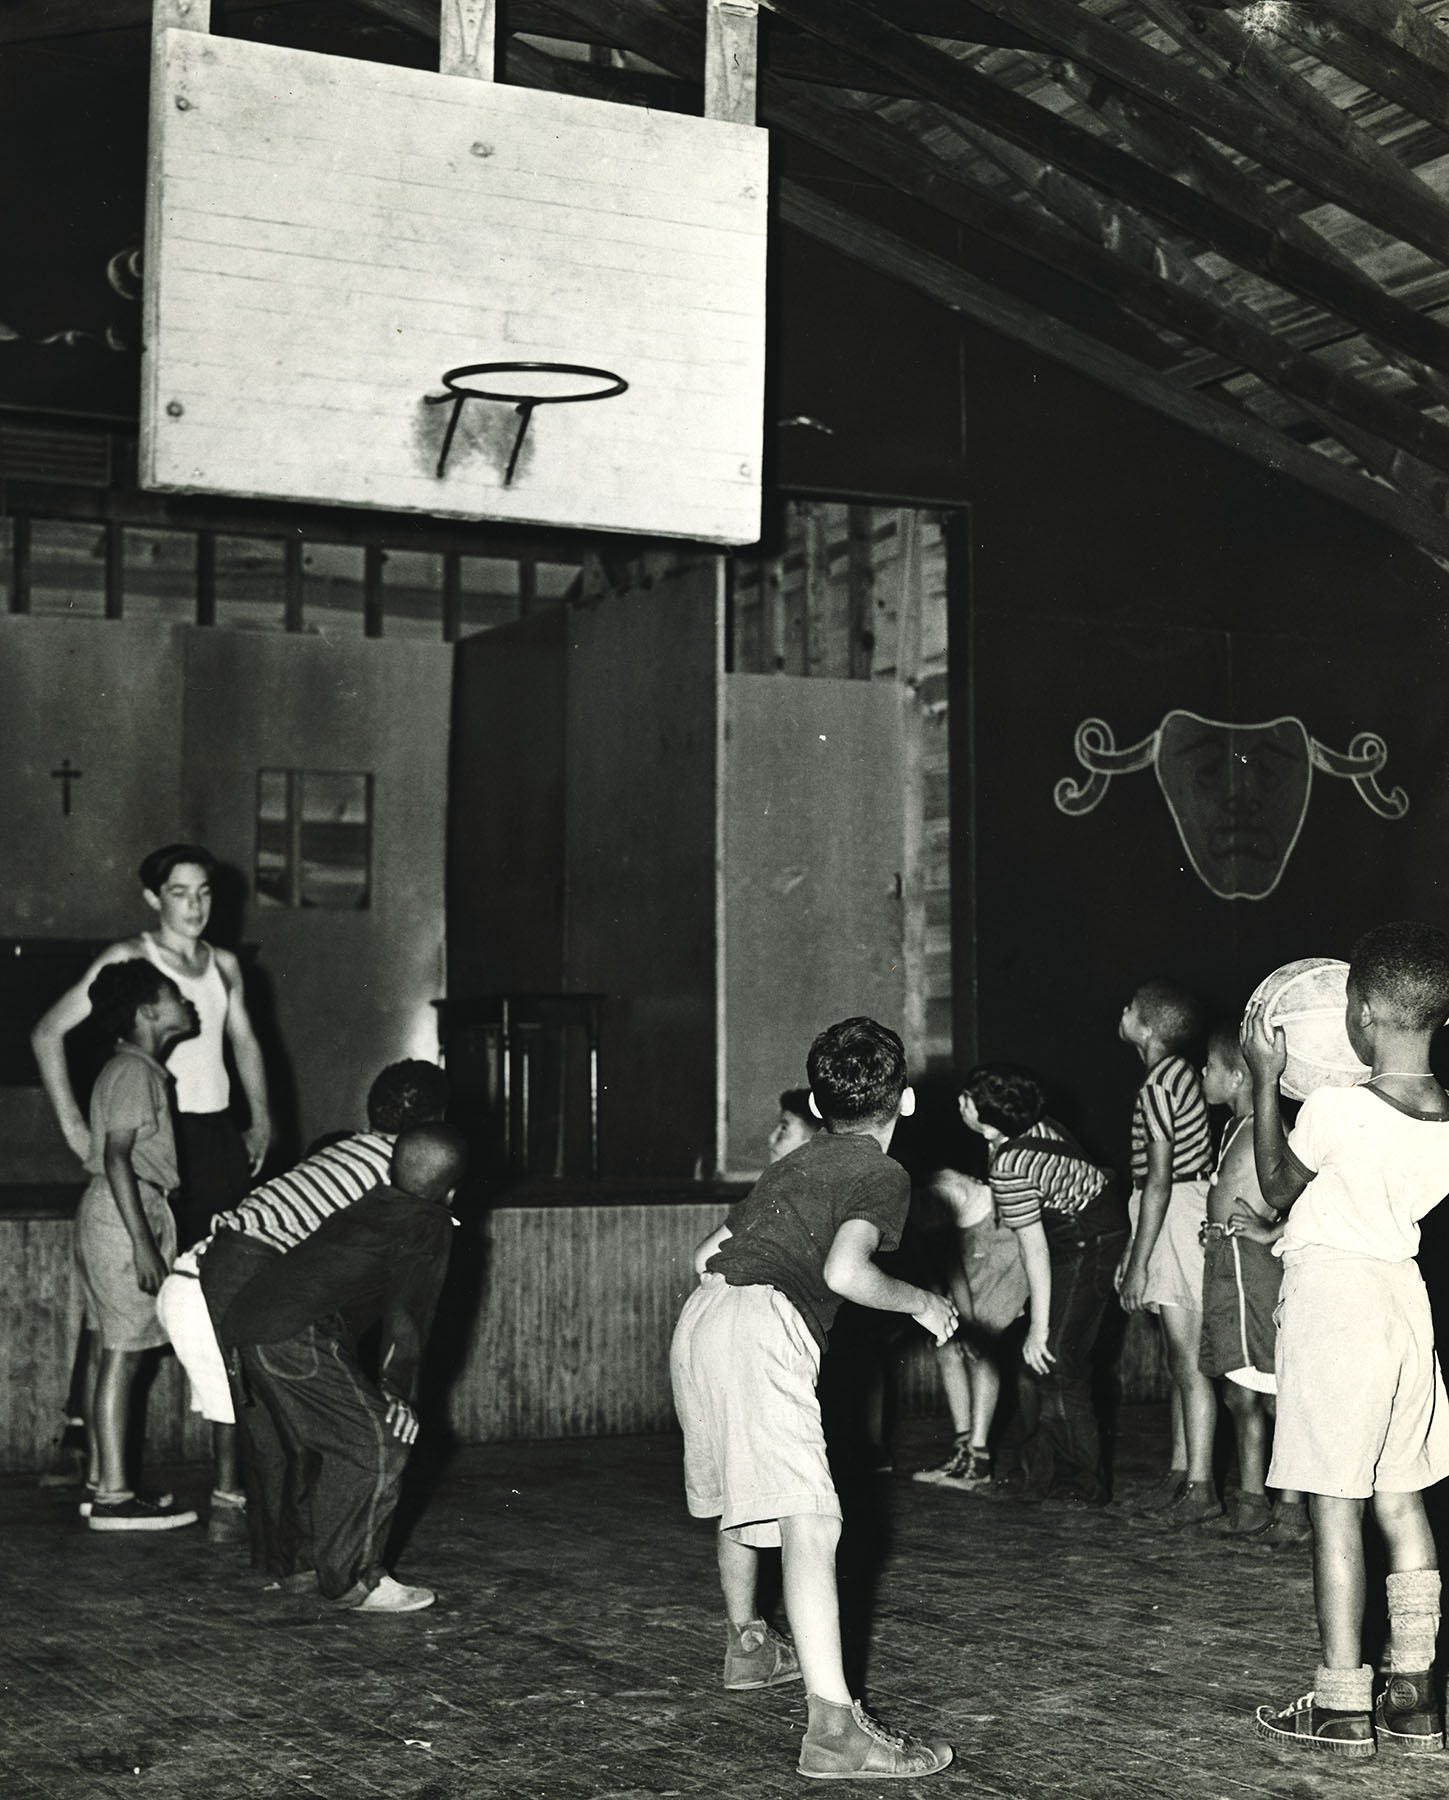 FHL_0772: Children playing Basketball, Catholic Youth Organization, Heckscher Camp, September 1942. Mayor LaGuardia Collection, NYC Municipal Archives.